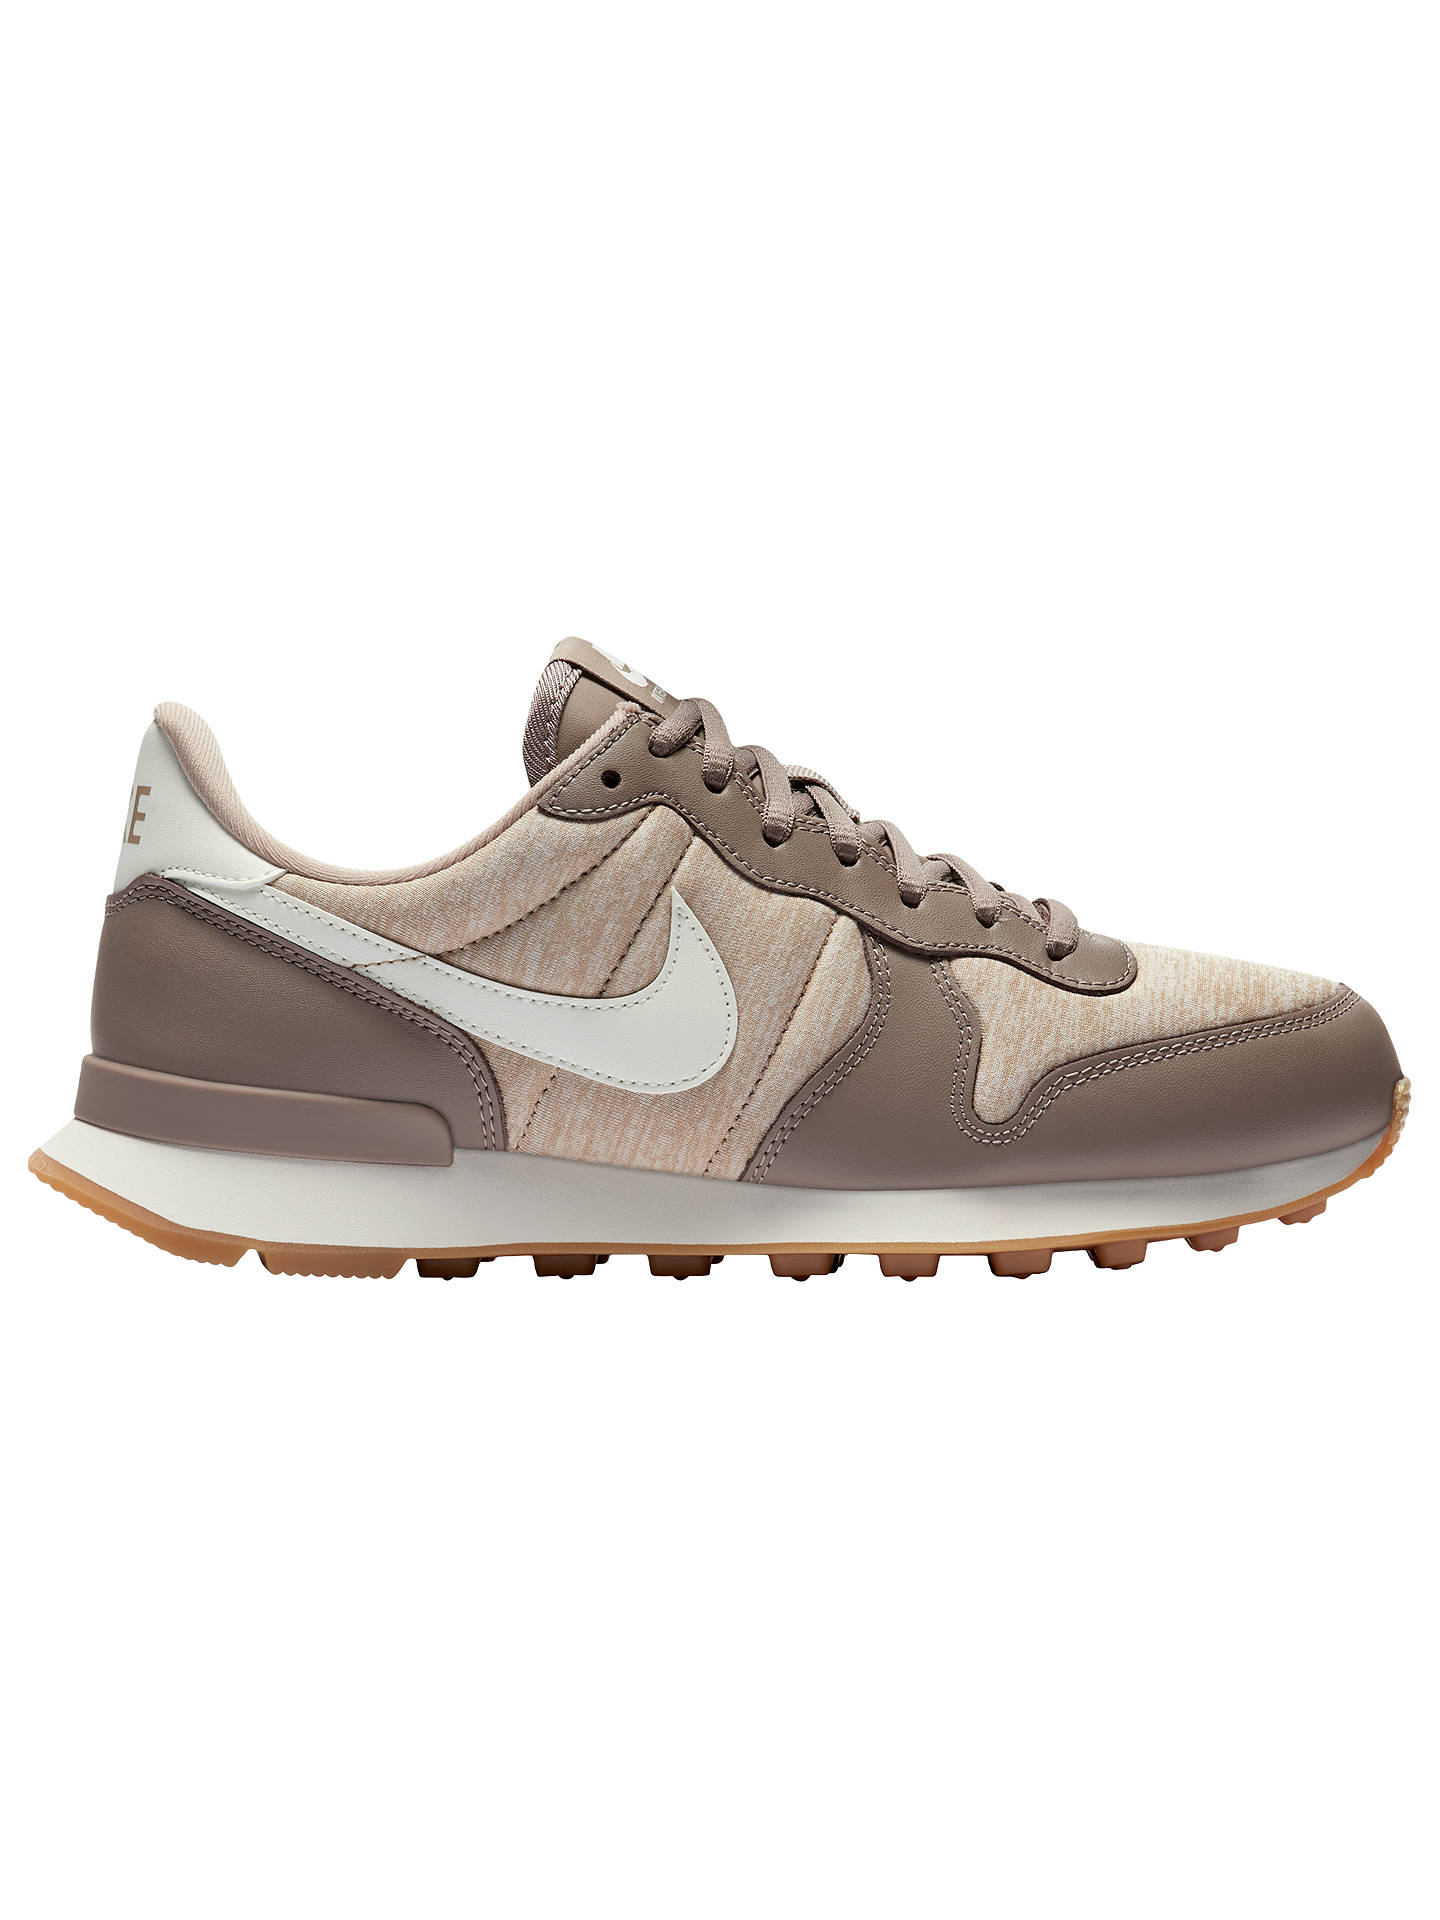 75c5ca5f3330 Nike Internationalist Women s Trainers at John Lewis   Partners